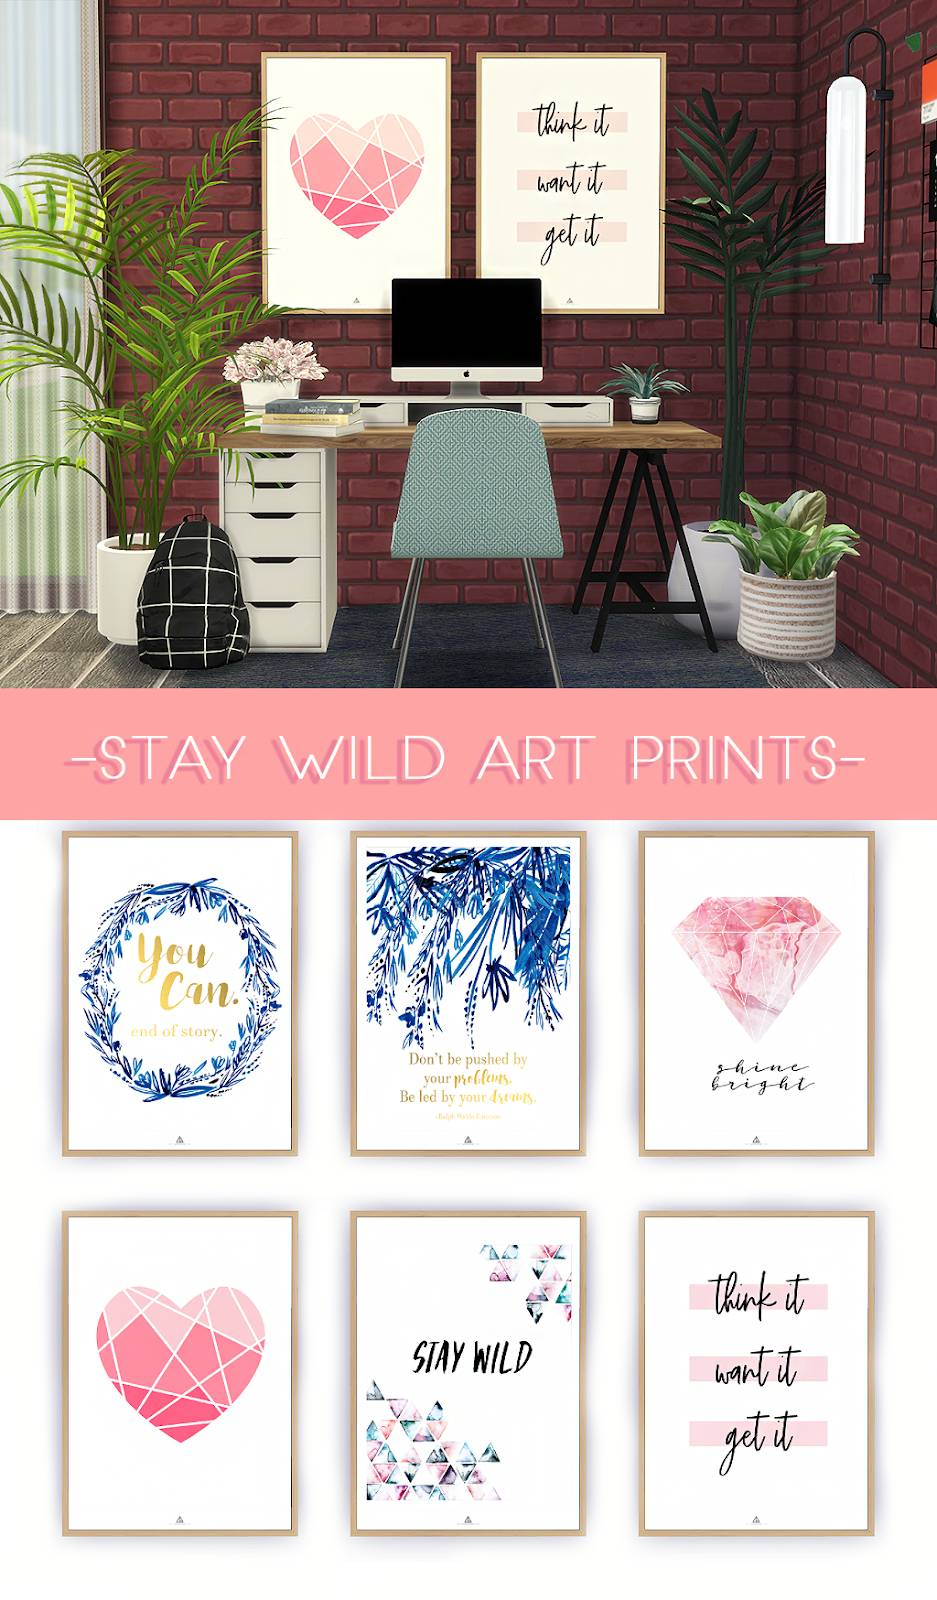 Набор картин - STAY WILD ART PRINTS